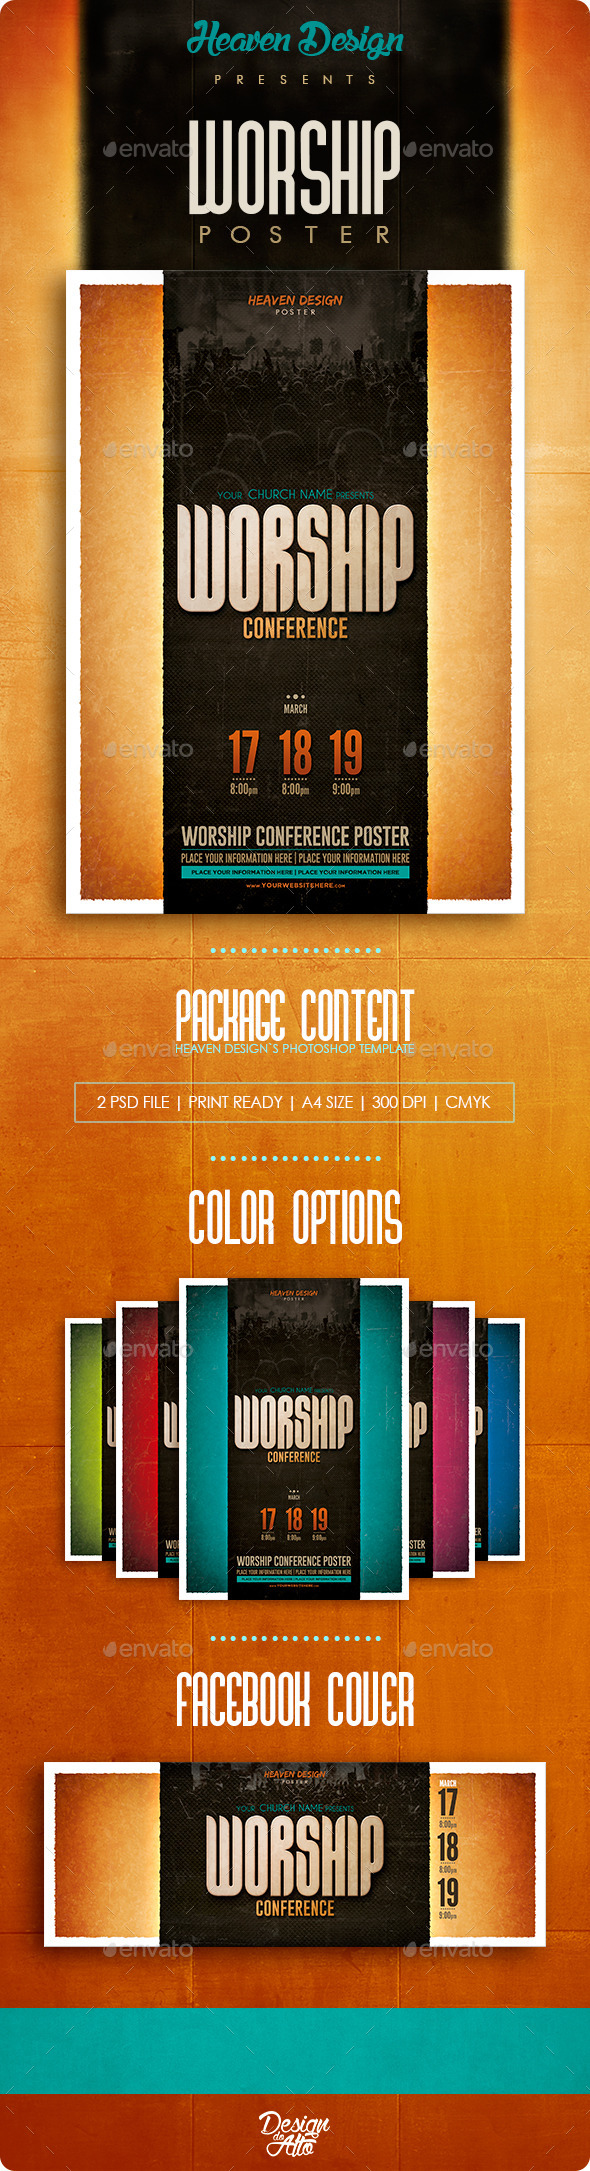 Worship Conference | Poster - Events Flyers